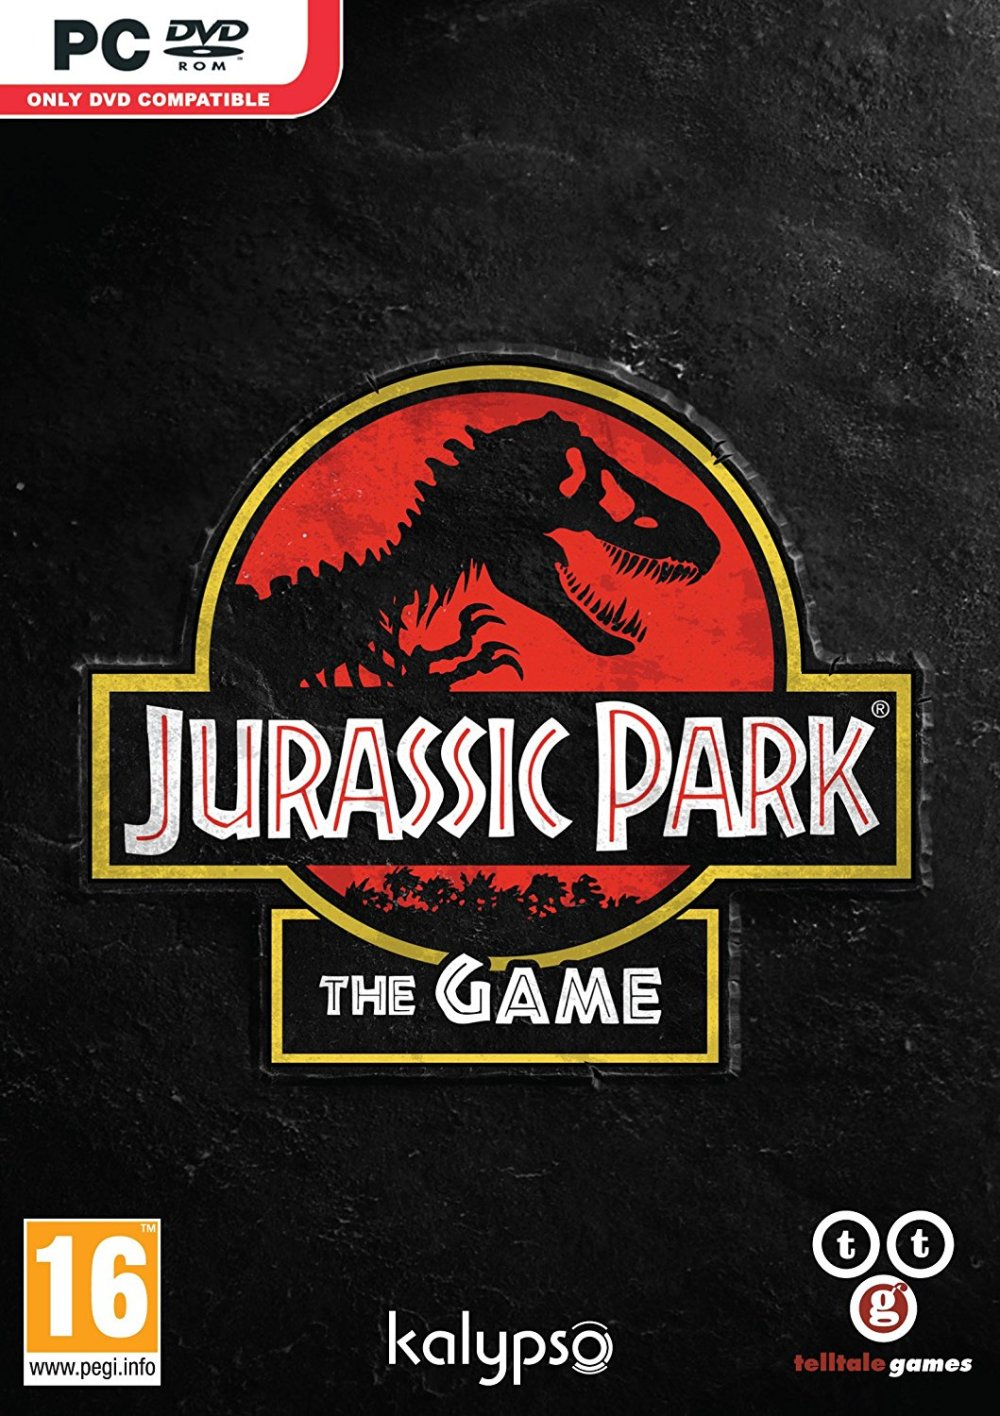 jurassic park the game amazon buy it now_